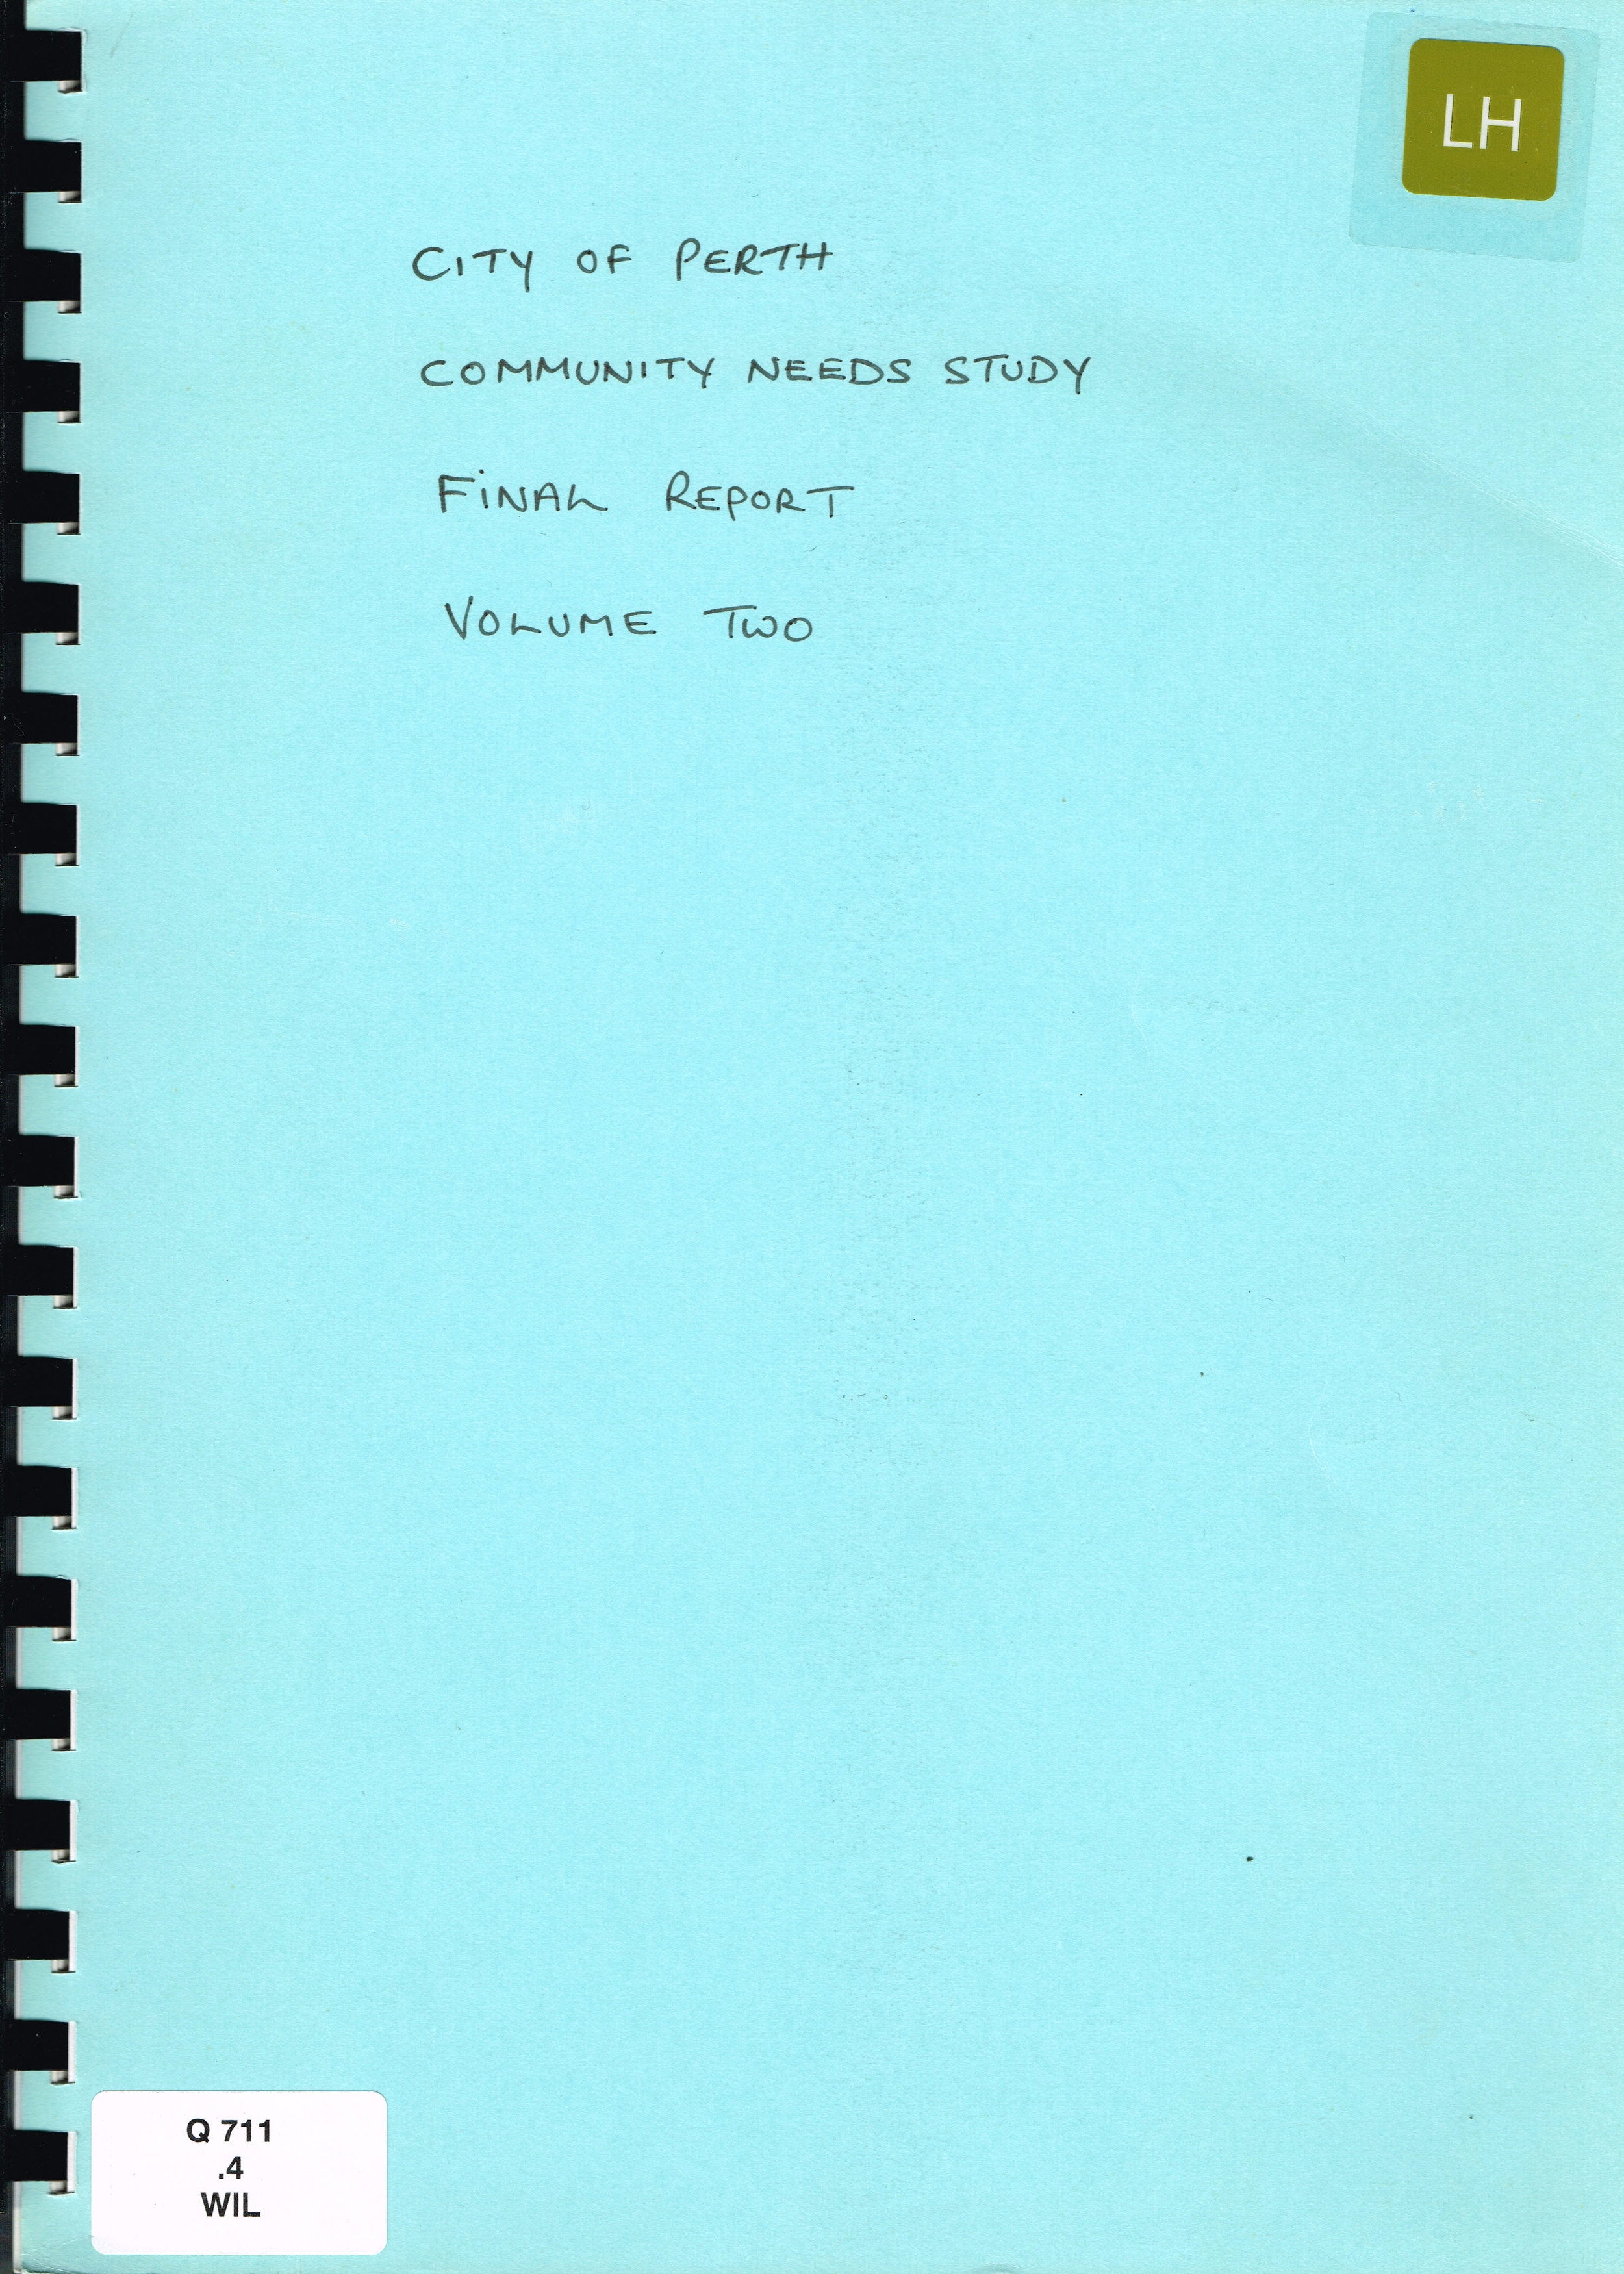 Community Needs Study : Final Report Volume Two  City of Perth